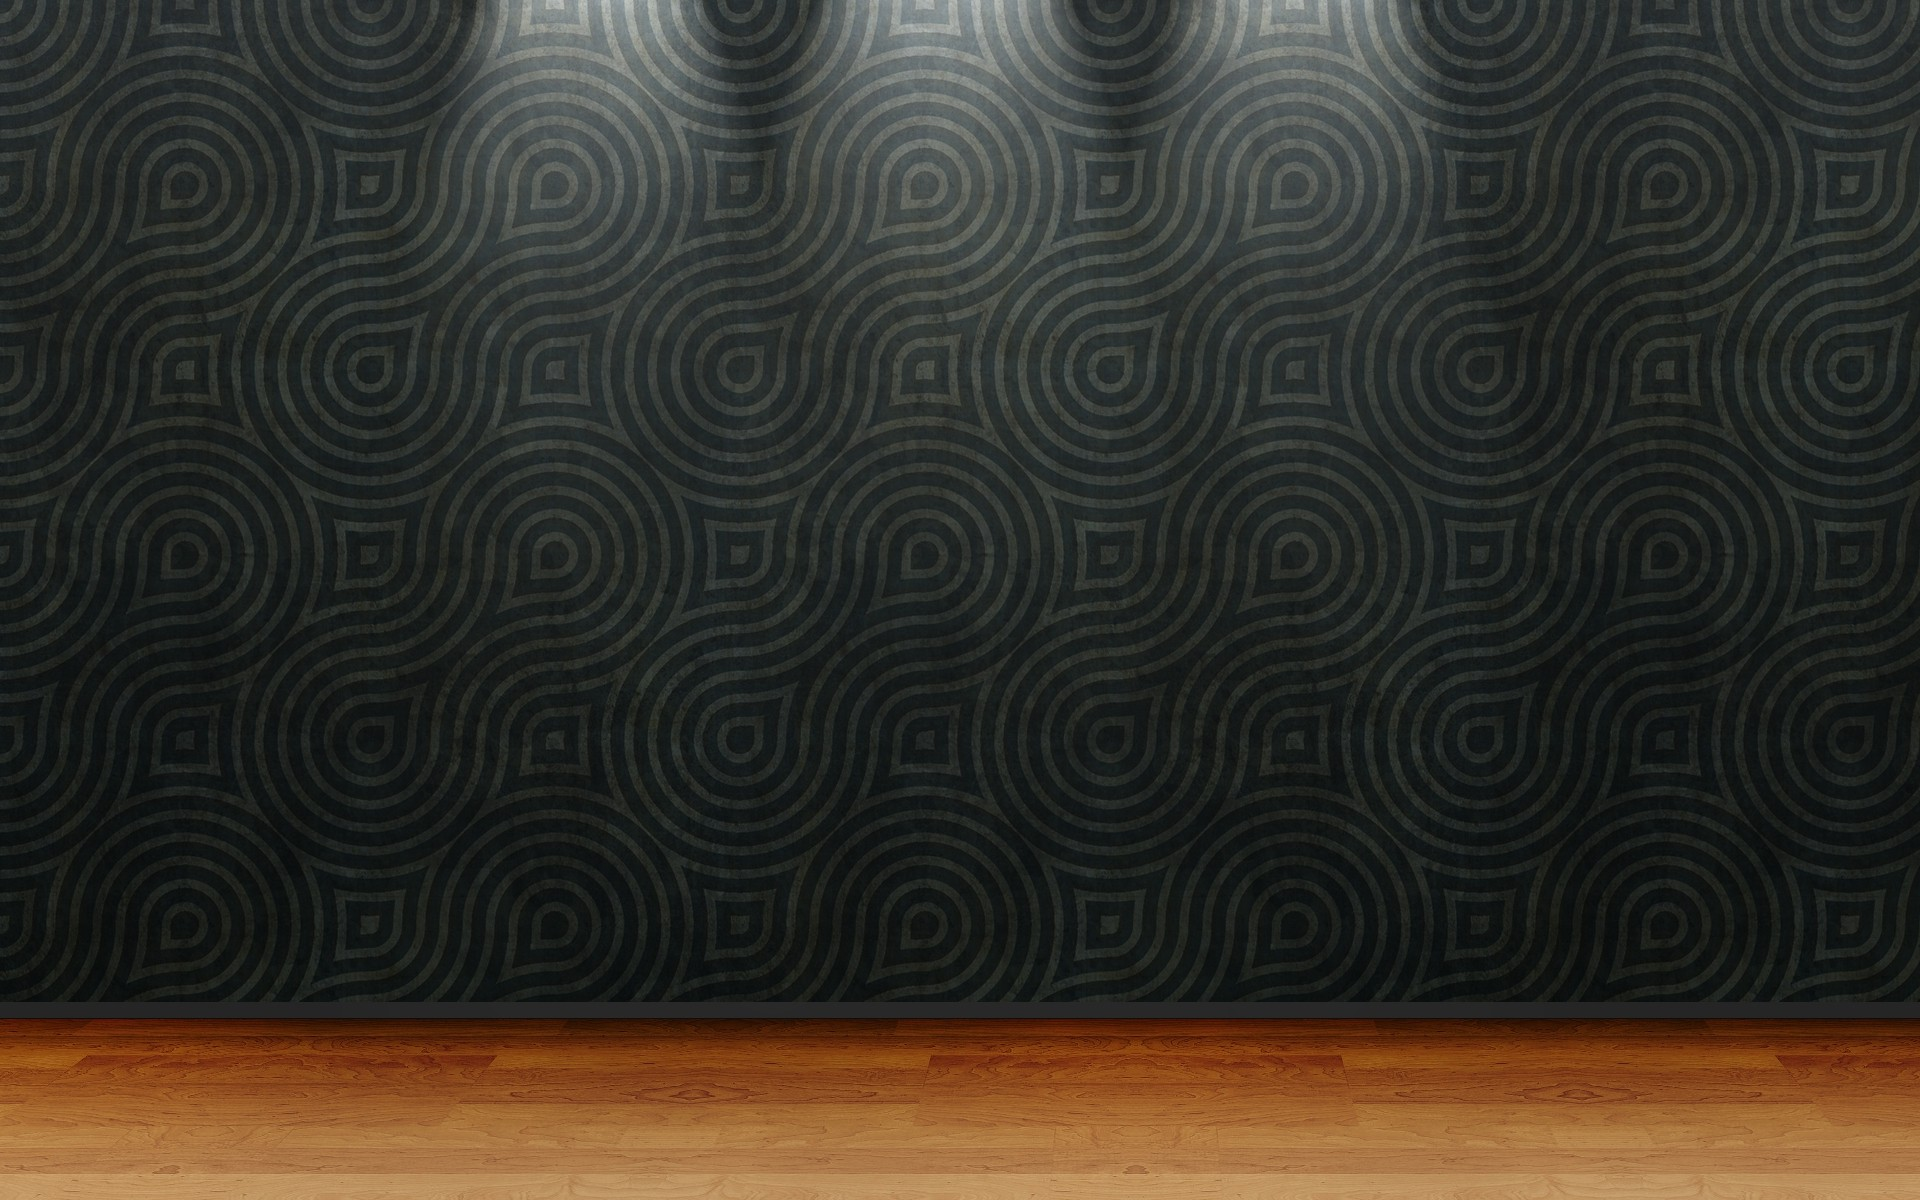 Floor 3d view room wood floor wallpaper 1920x1200 for 3d wood wallpaper